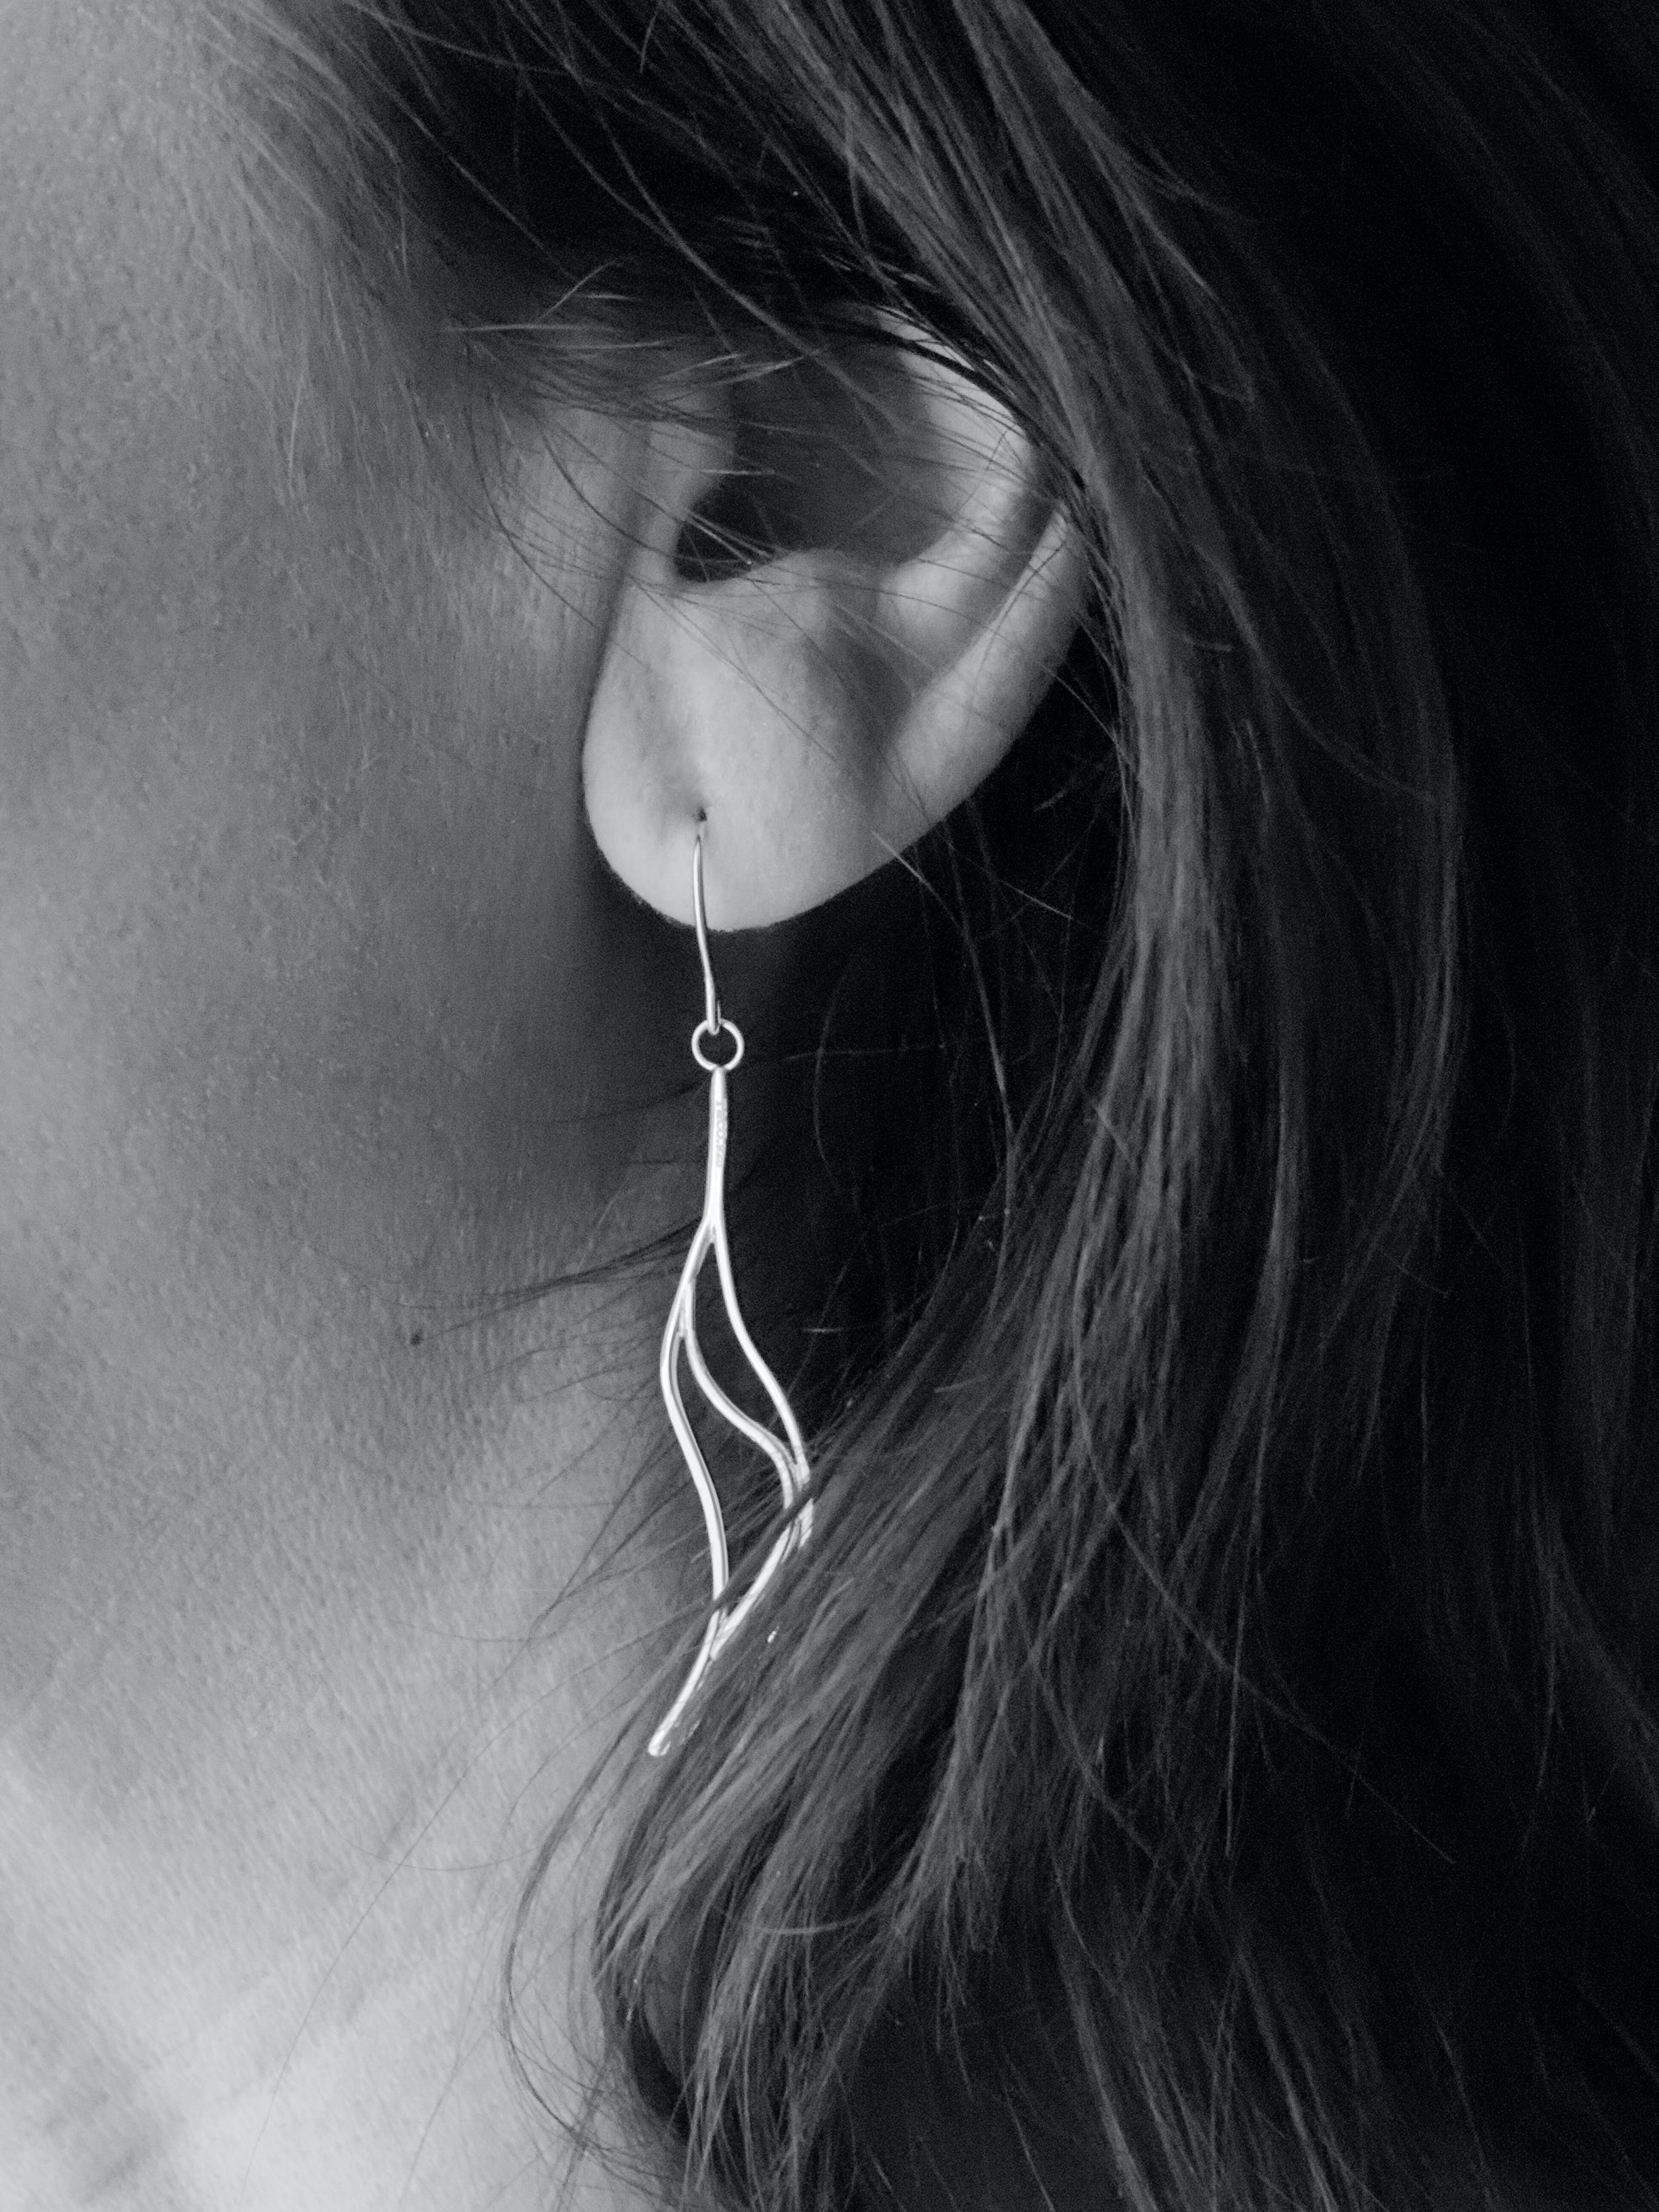 Grayscale Photo of Woman's Hook Earrings